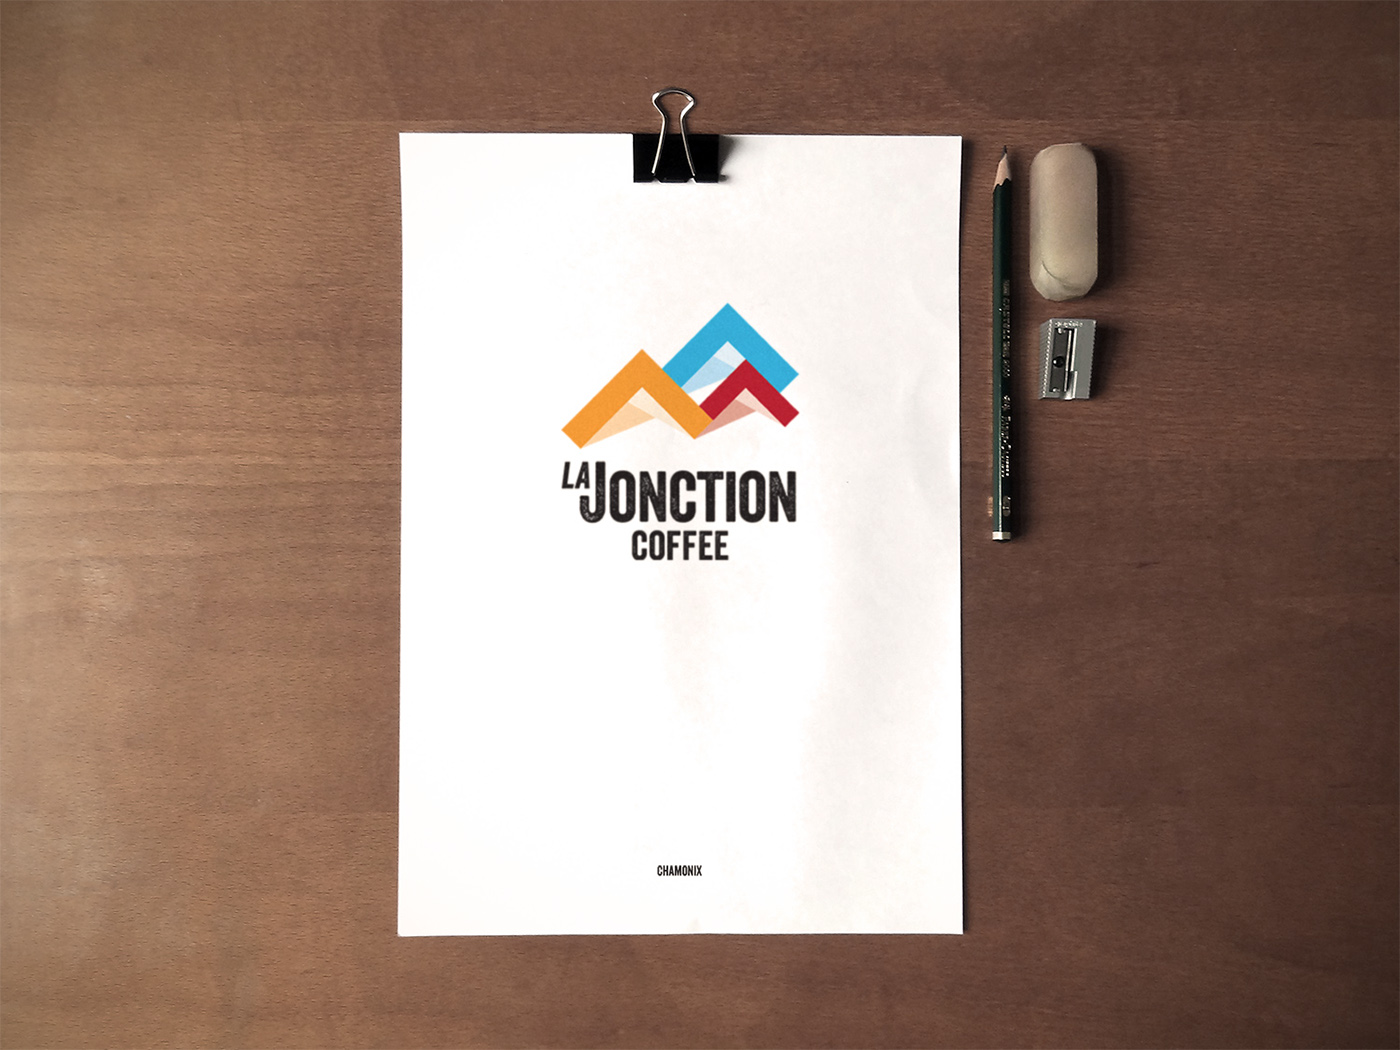 logo,Coffee,shop,france,mountains,simple,yellow,blue,red,chamonix